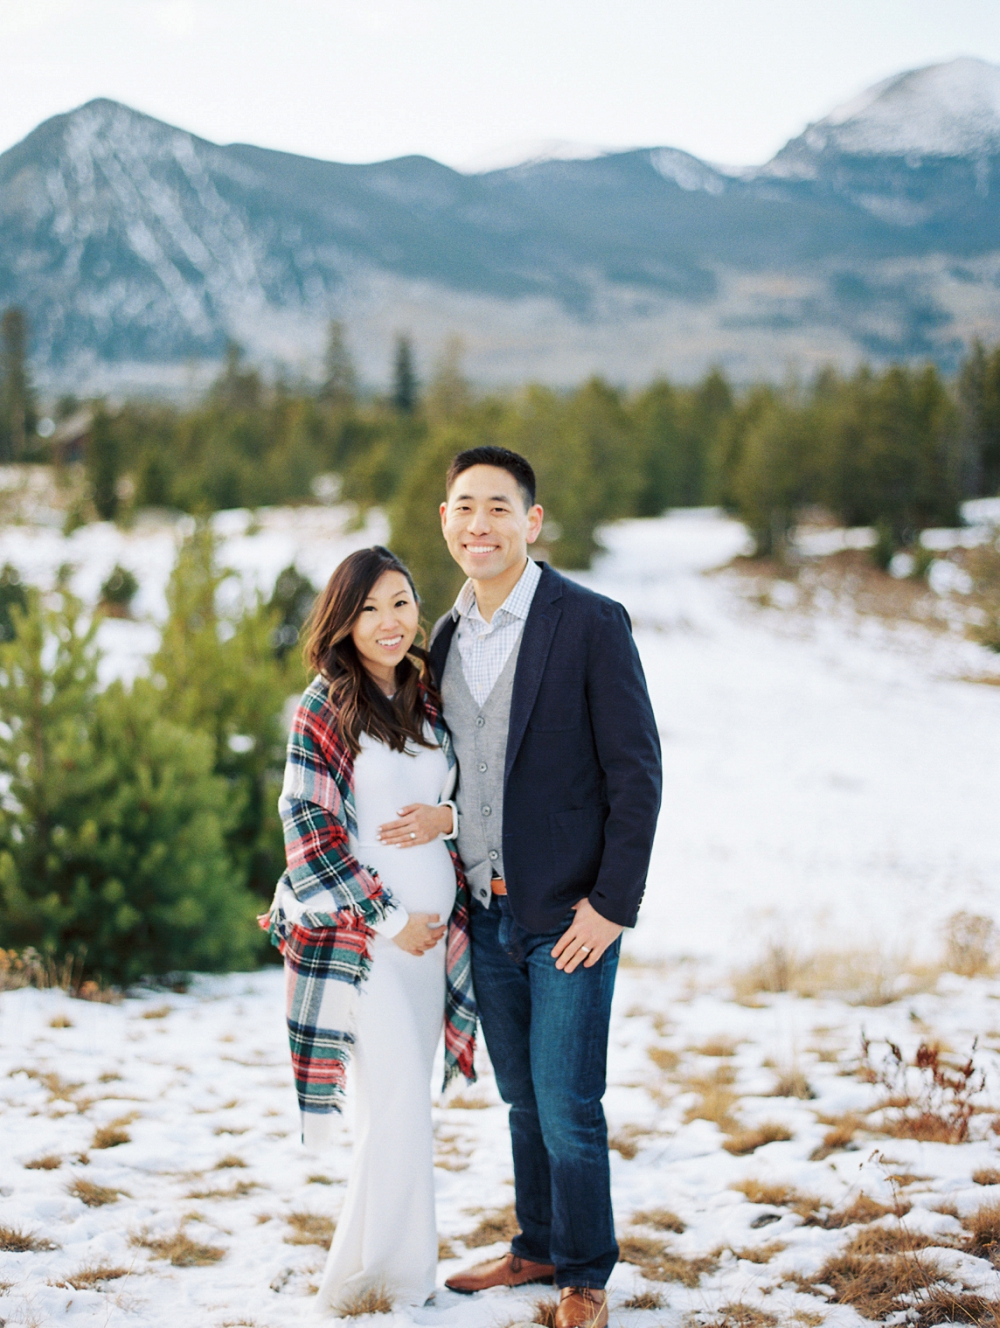 Dani-Cowan-Photography-Snowy-Colorado-Mountain-Maternity-Photoshoot57_WEB